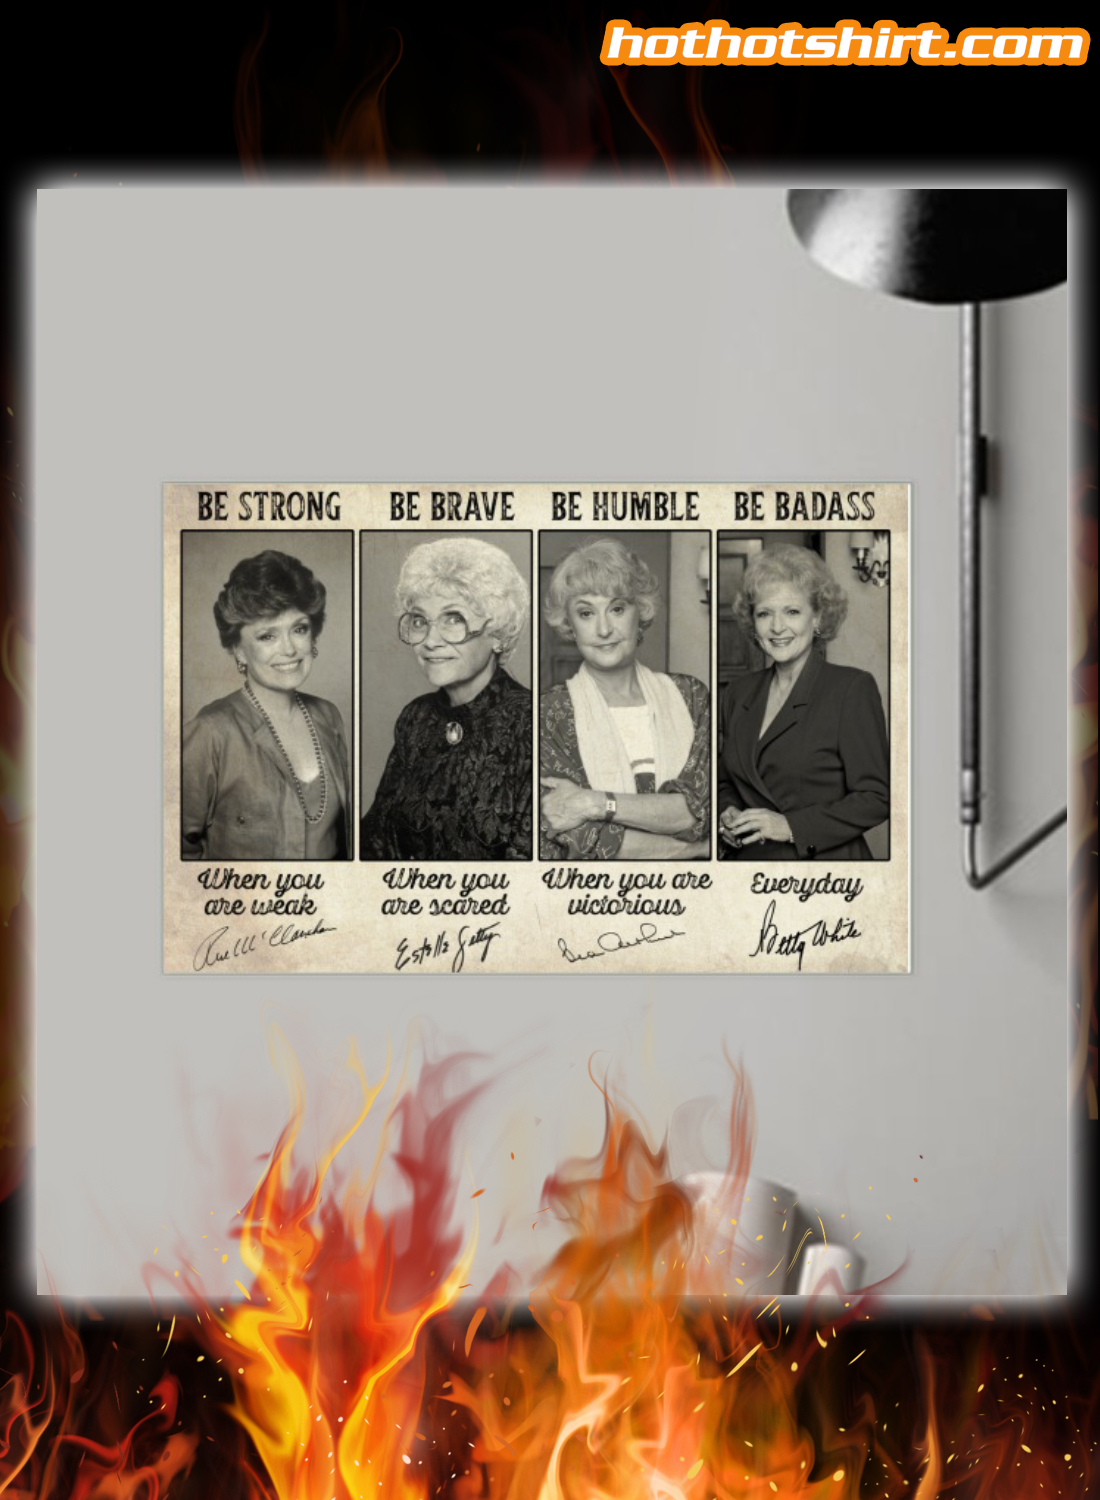 Golden girls be strong be brave be humble be badass signature poster